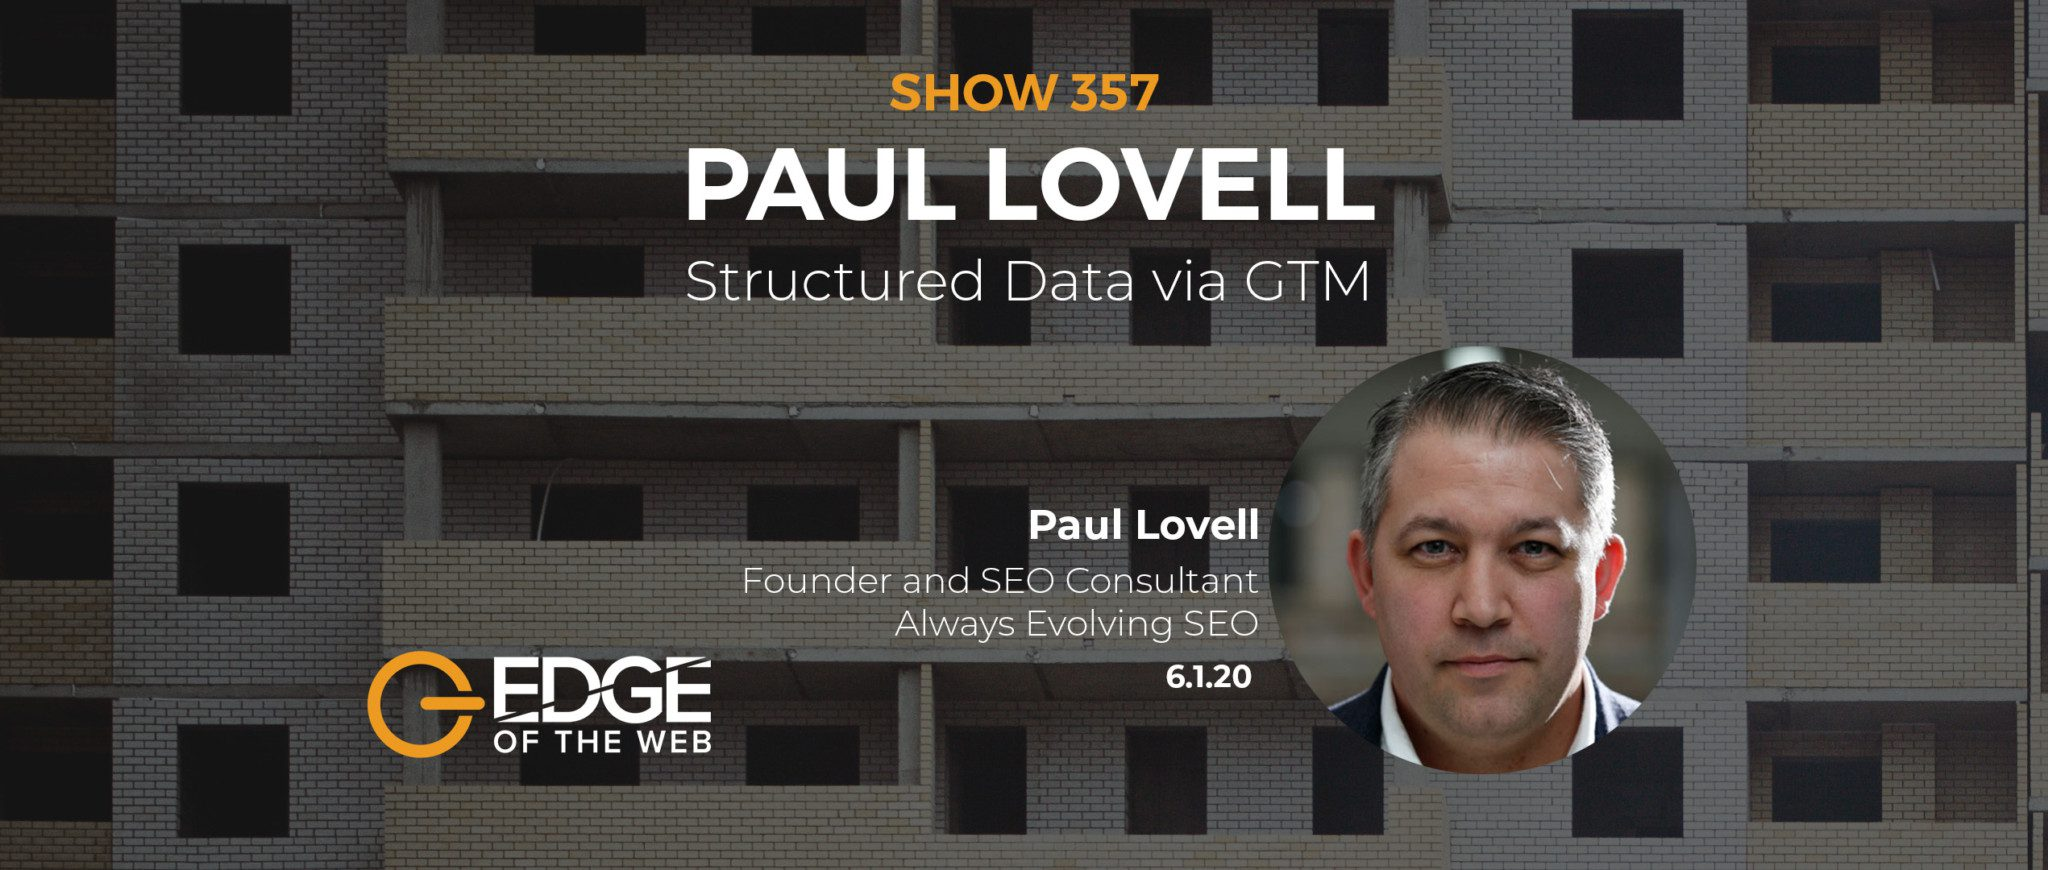 EDGE of the Web Ep357 Featured Image of Paul Lovell